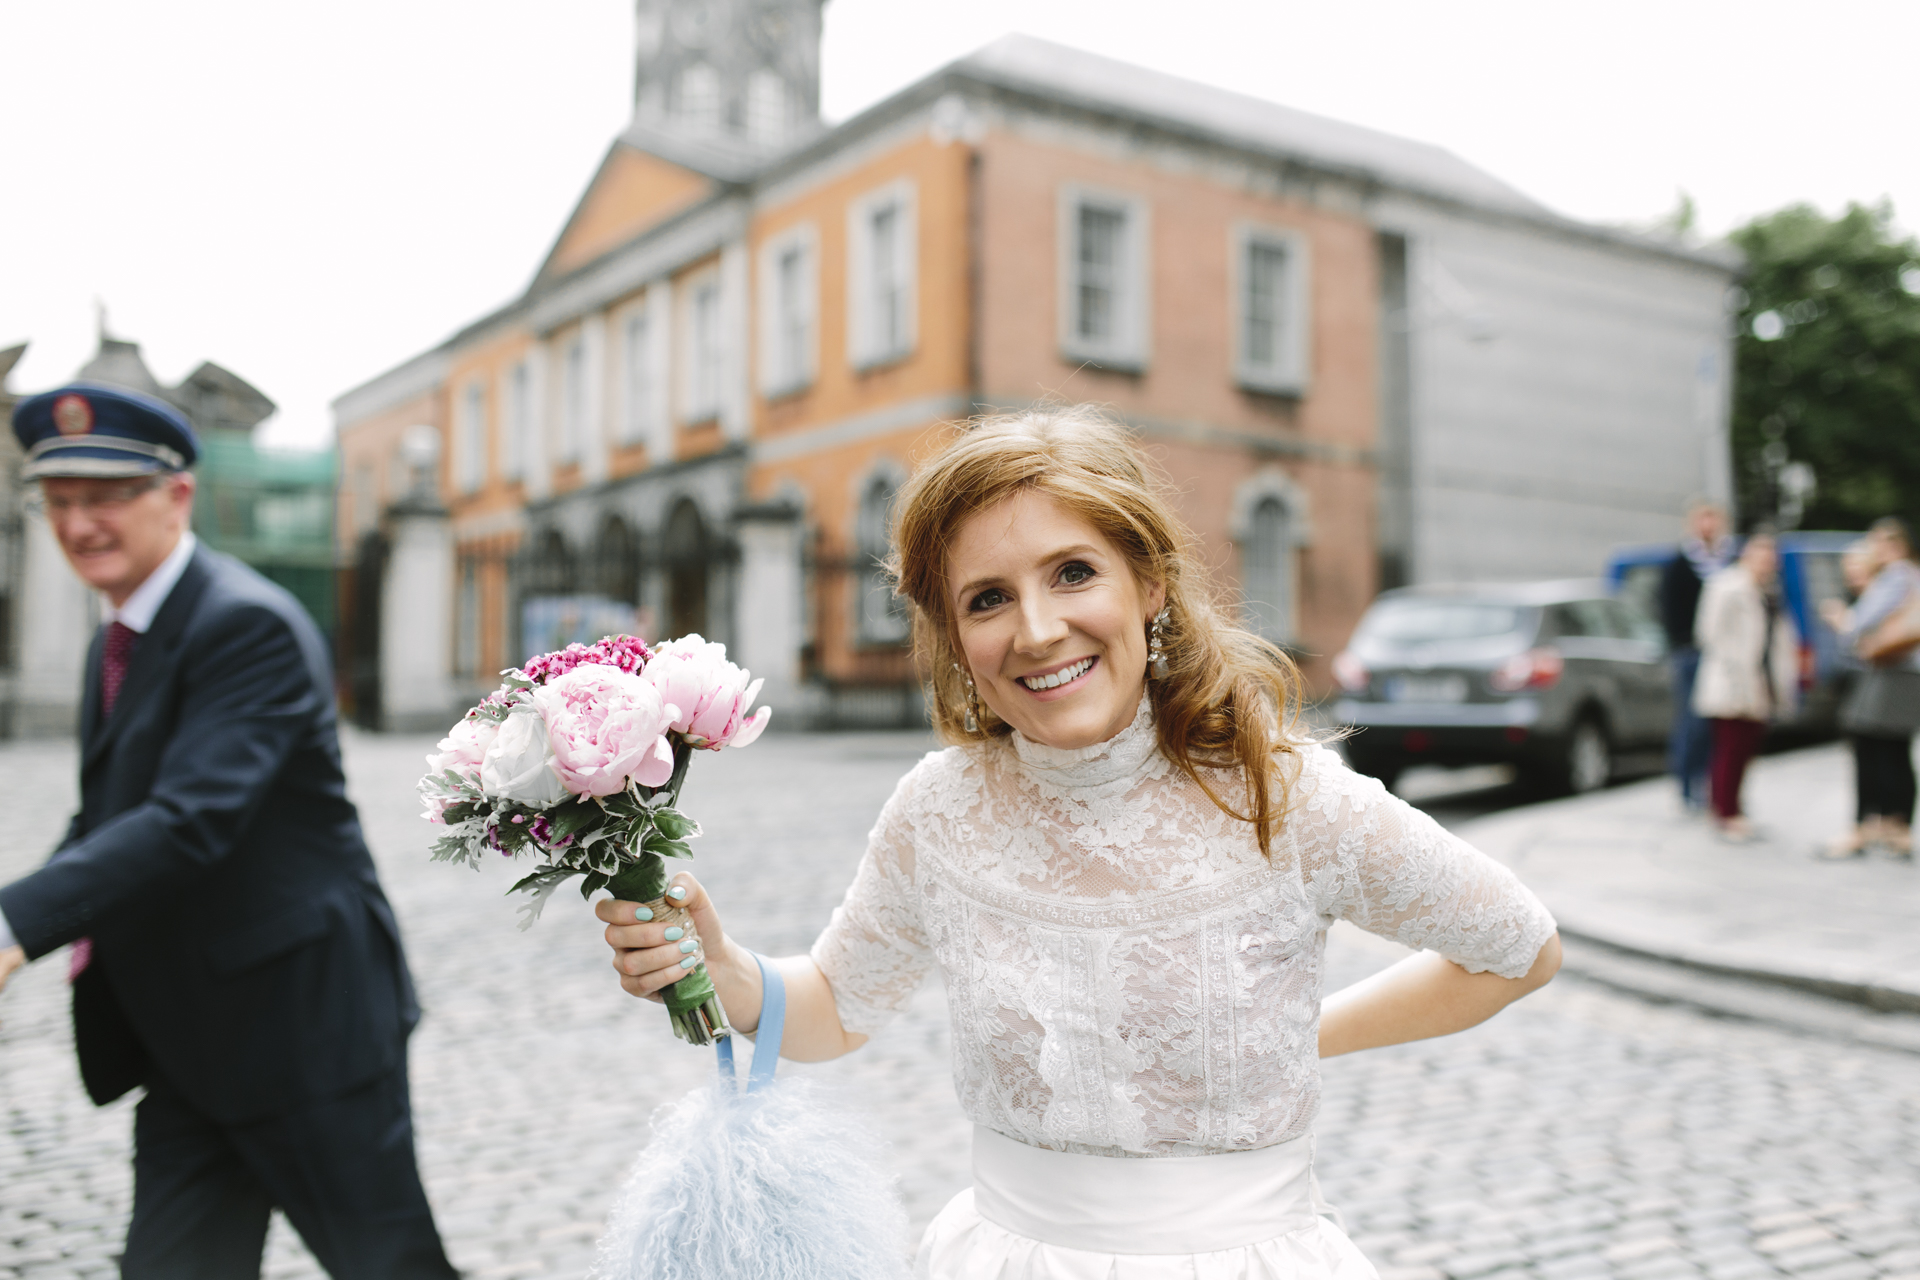 Dublin Wedding Photographer Graciela Vilagudin 00157.jpg